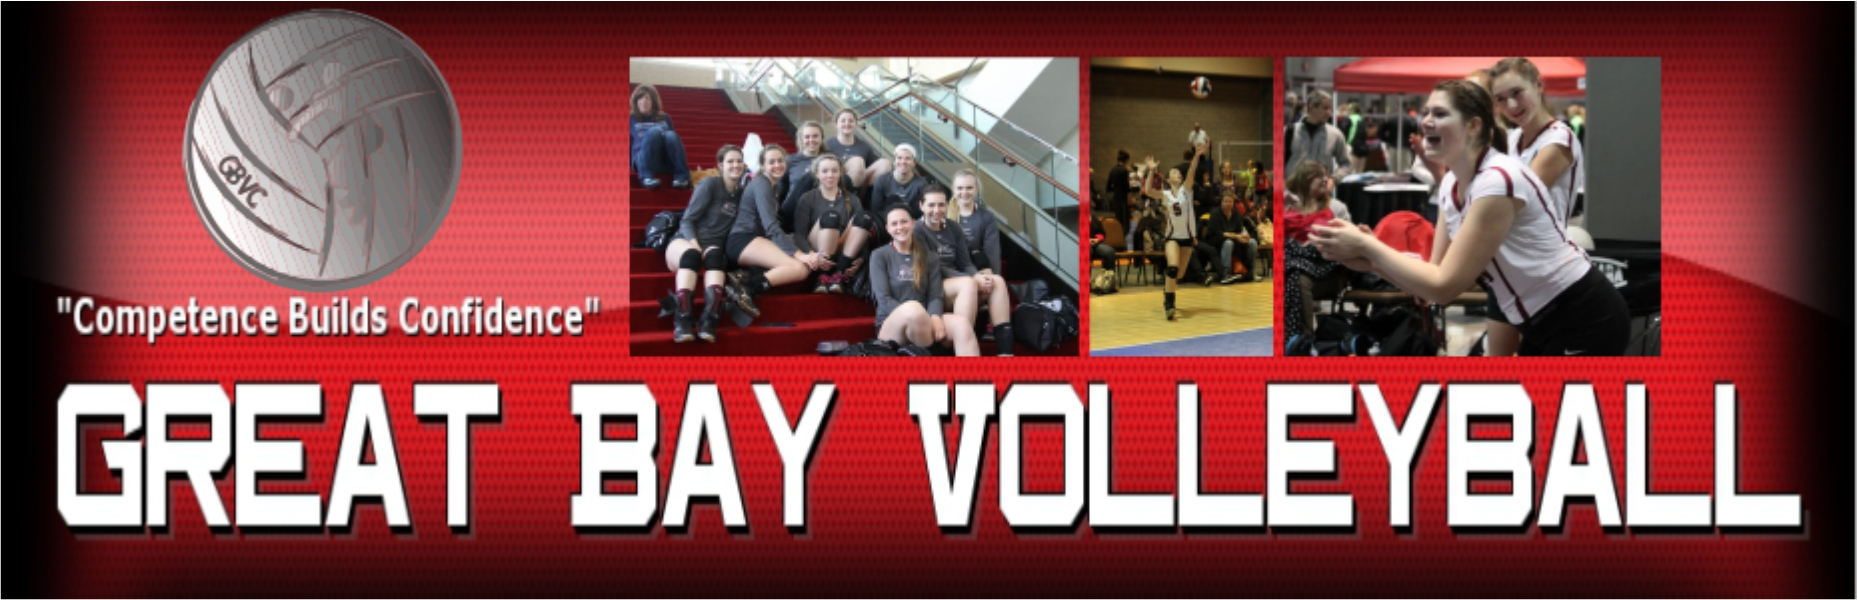 GREAT BAY VOLLEYBALL